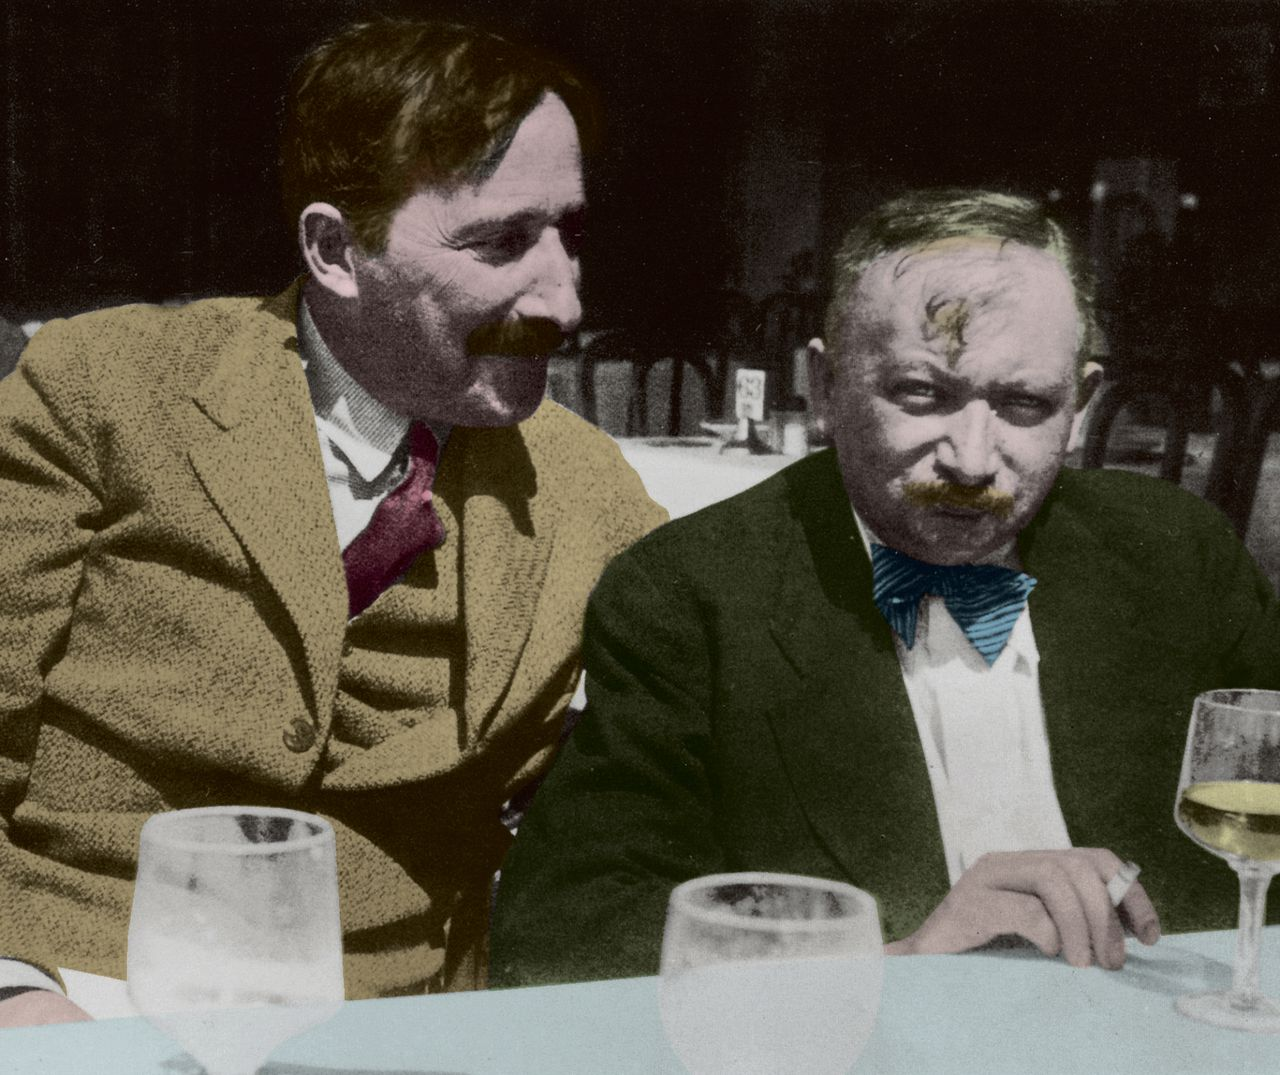 Stefan Zweig (links) en Joseph Roth in 1936 in Oostende.